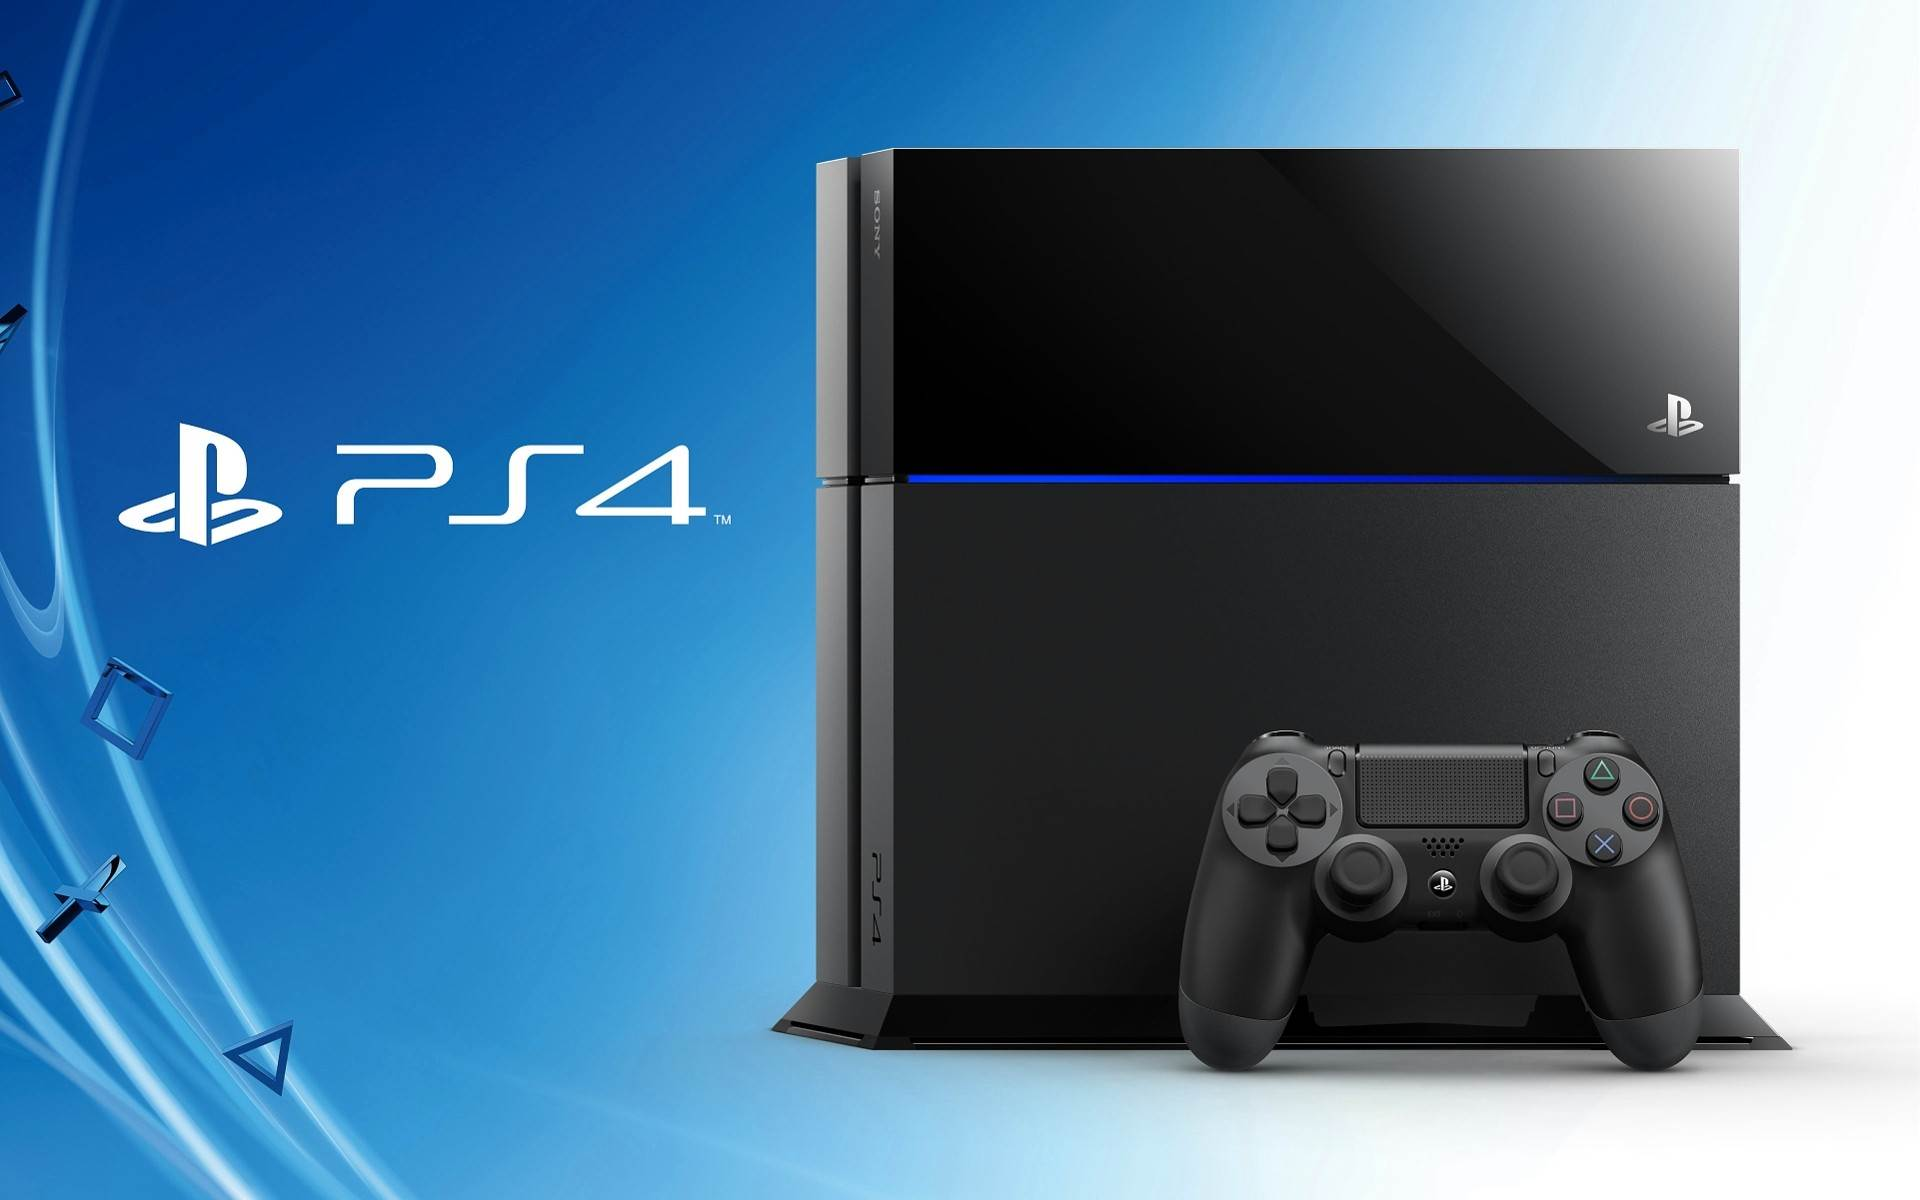 PS4 Wallpapers in 1080P HD GamingBoltcom Video Game News Reviews 1920x1200